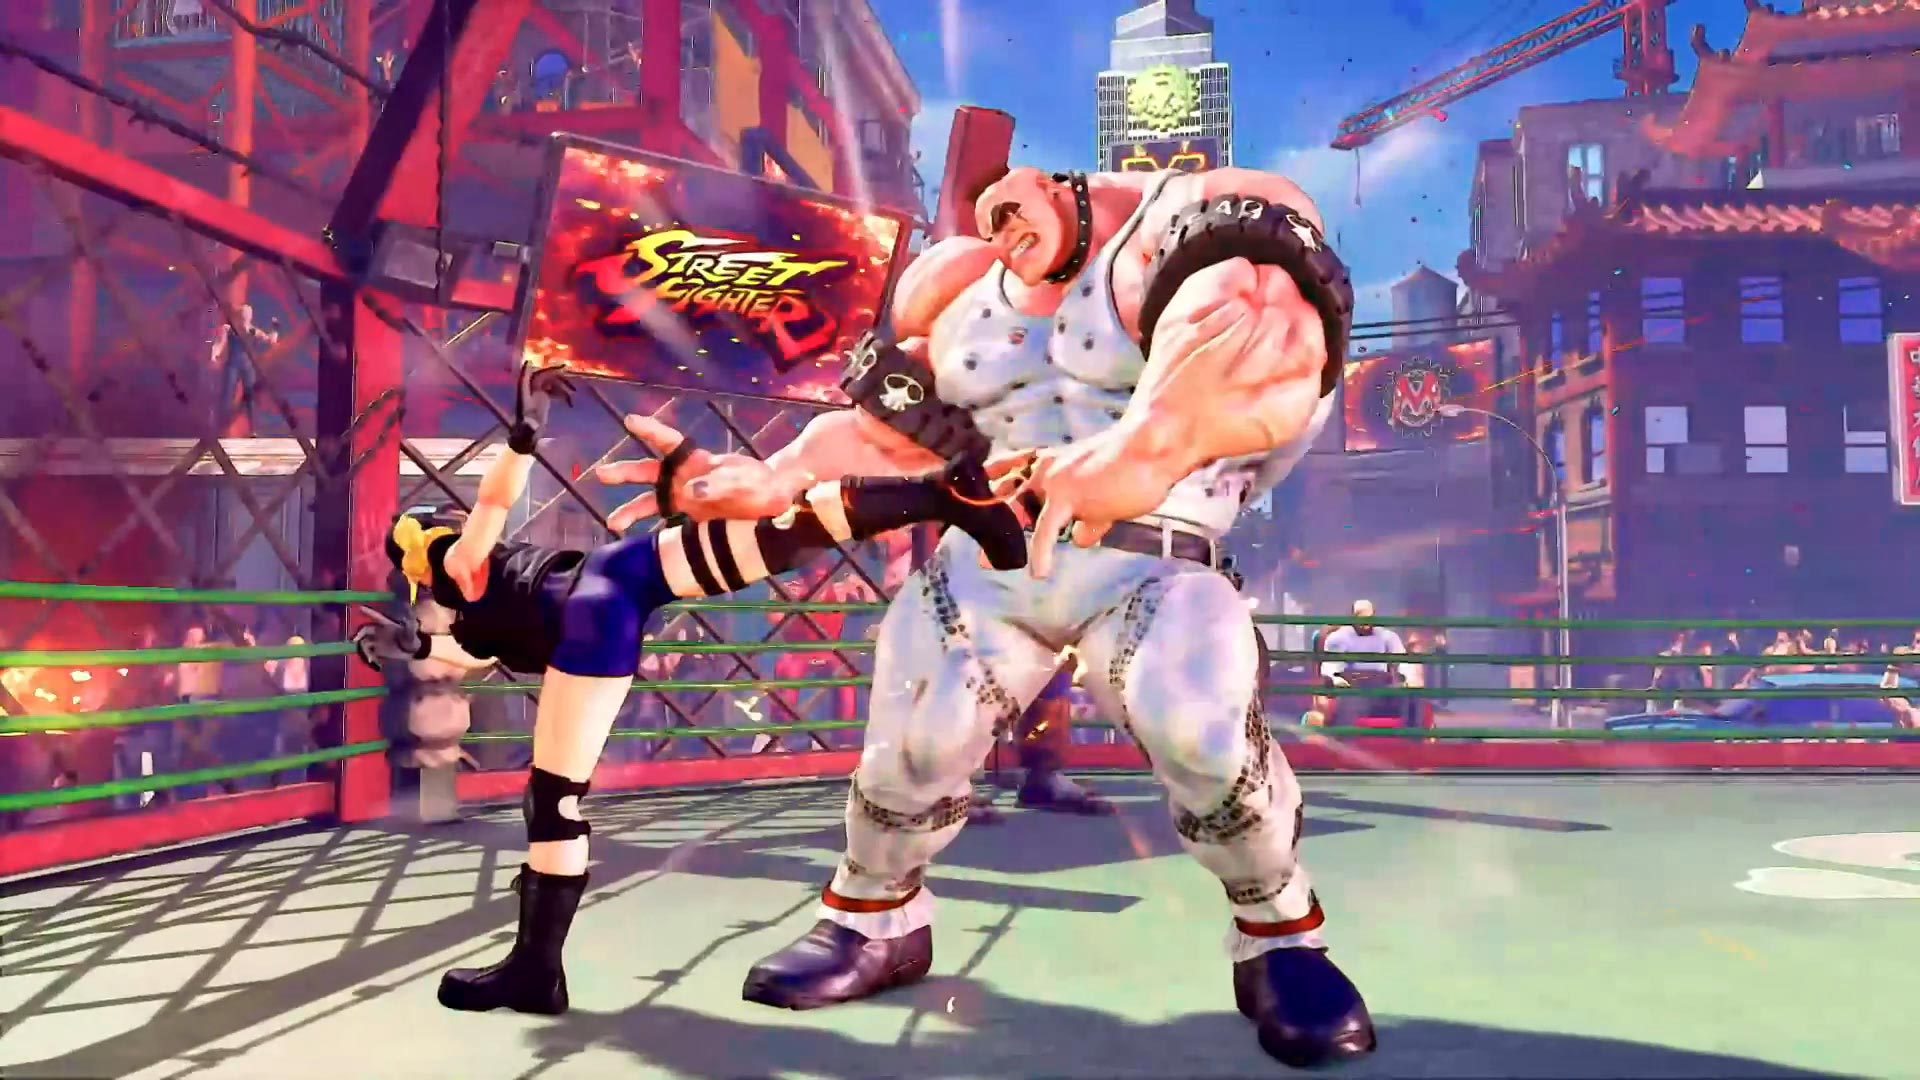 Street Fighter 5 leaked gallery of E. Honda, Lucia and Poison 22 out of 35 image gallery